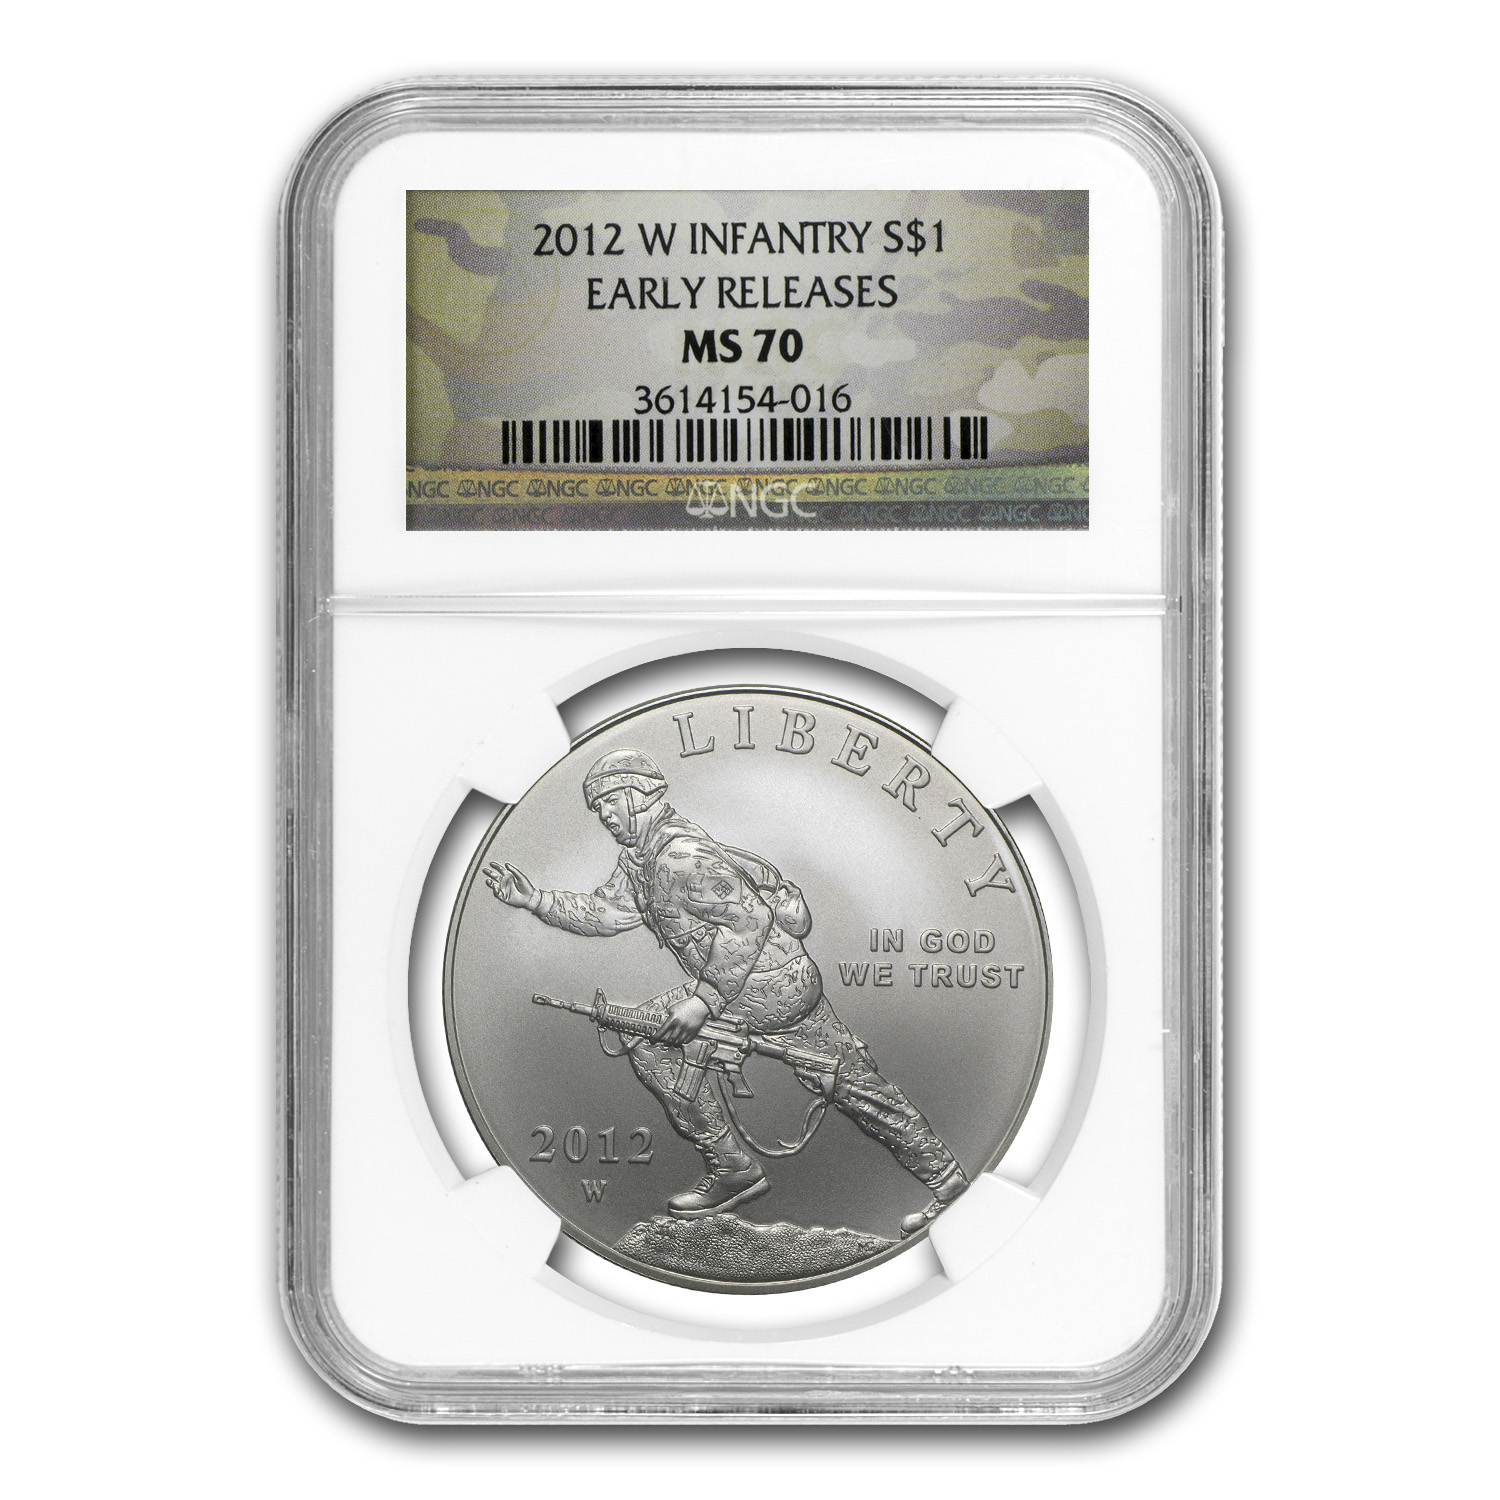 2012-W Infantry Soldier $1 Silver Commem MS-70 NGC